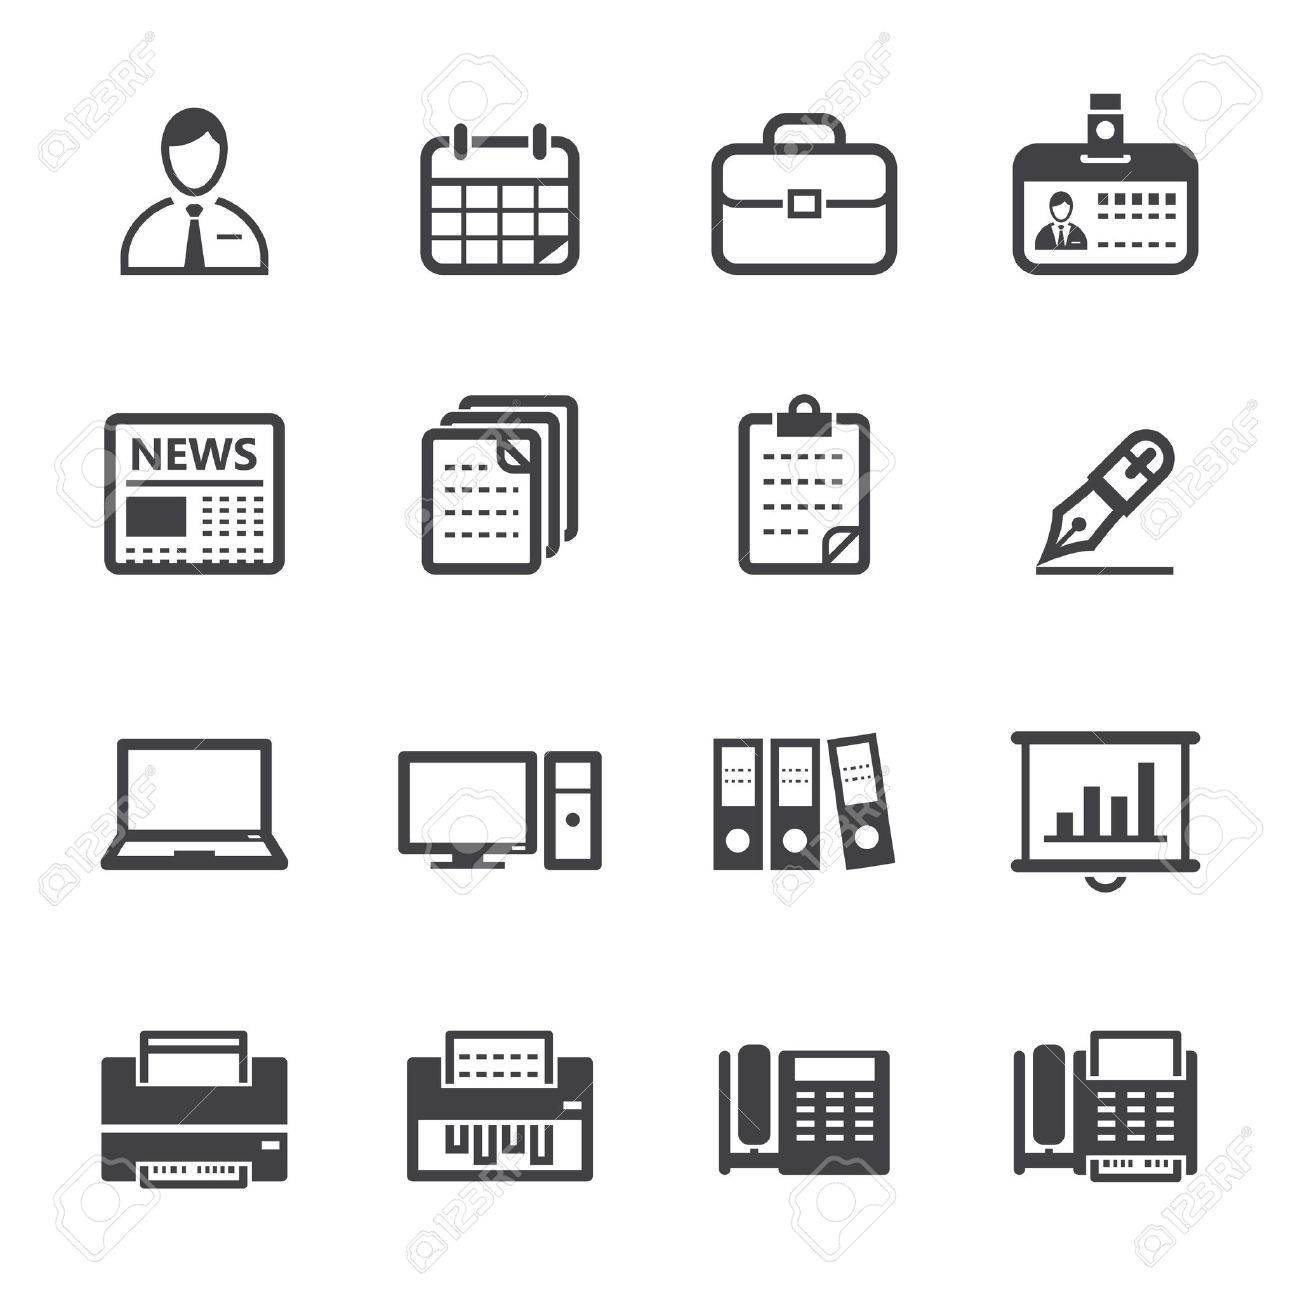 News Icon Stock Photos Images. Royalty Free News Icon Images And ...